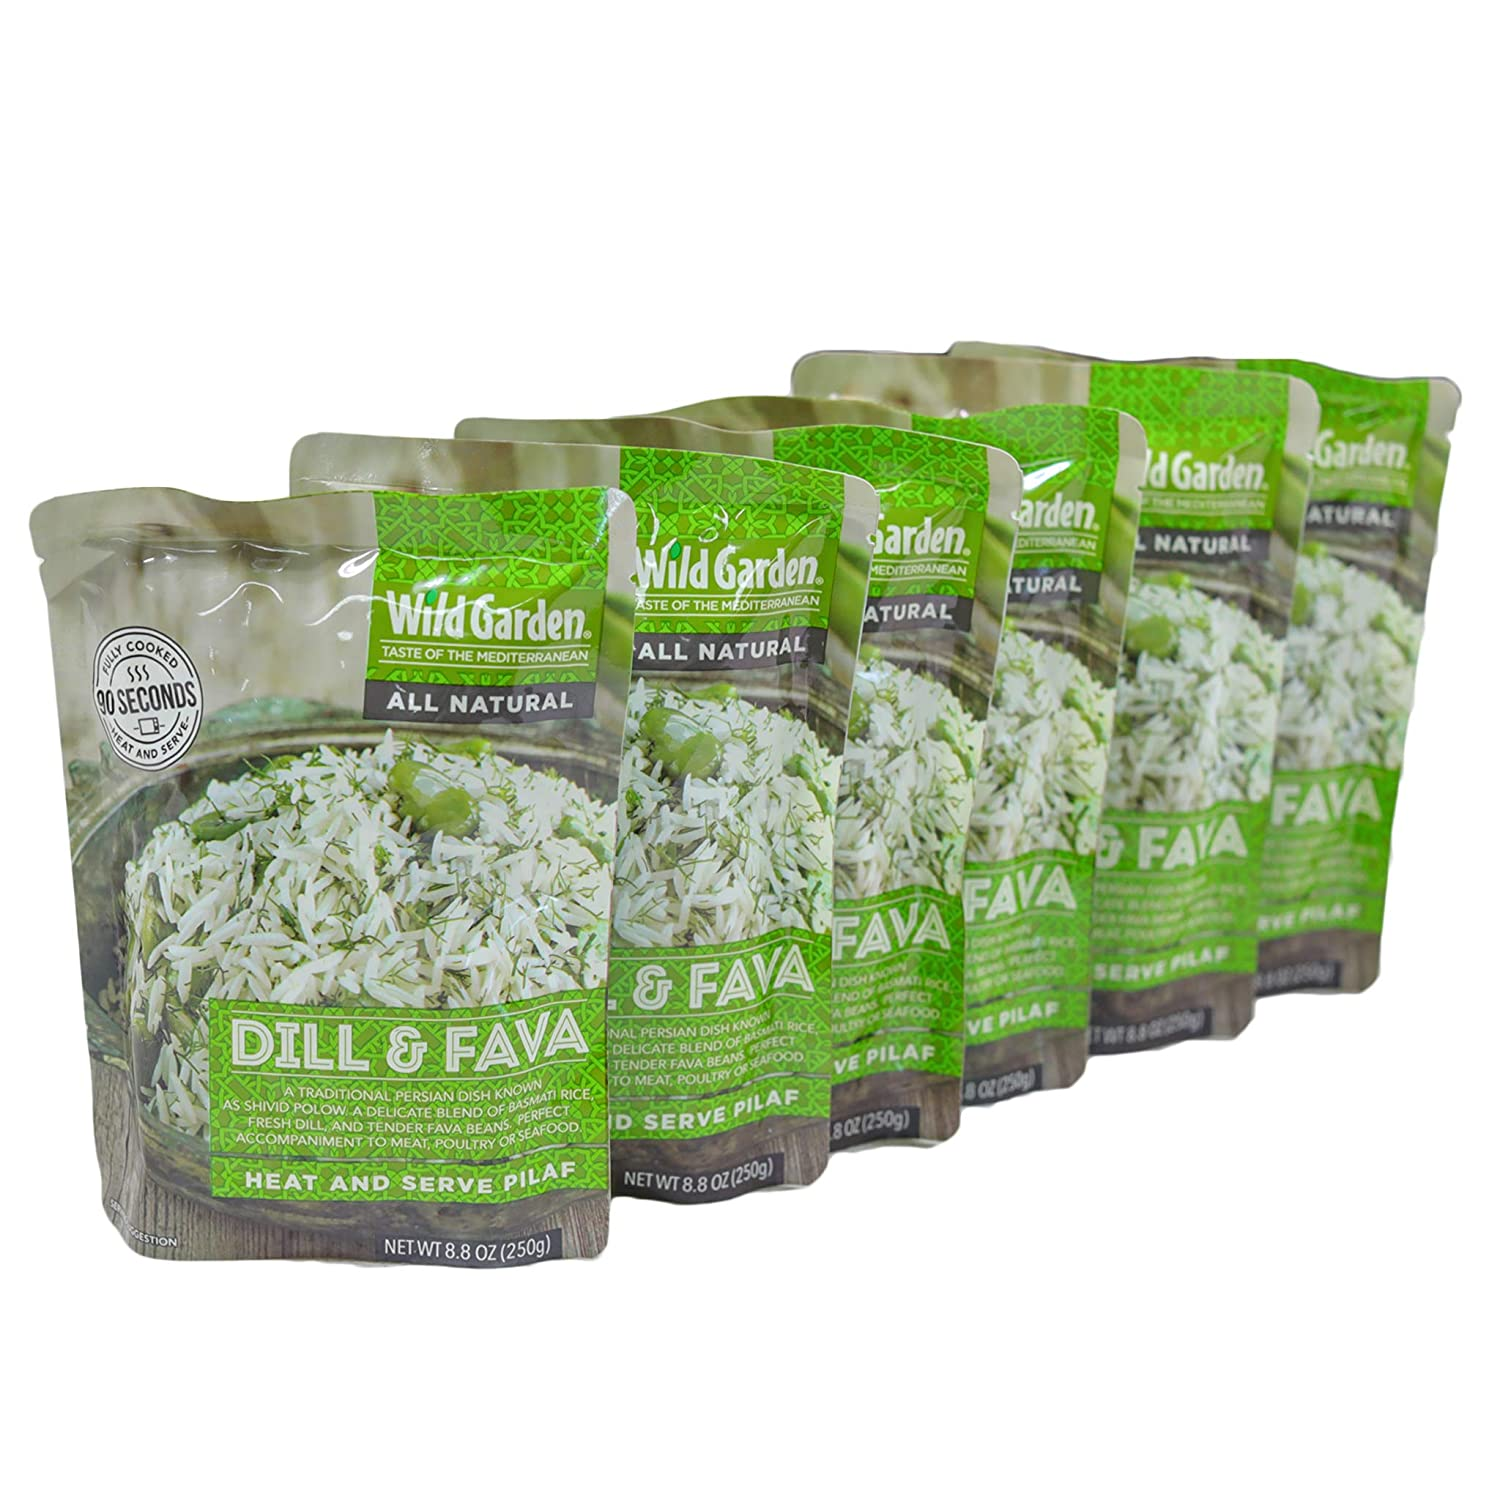 Wild Garden Heat and Serve Pilaf, 100% All-Natural Dill & Fava, Fully Cooked, Ready to Eat, Microwavable 8.8 oz, 6 pack